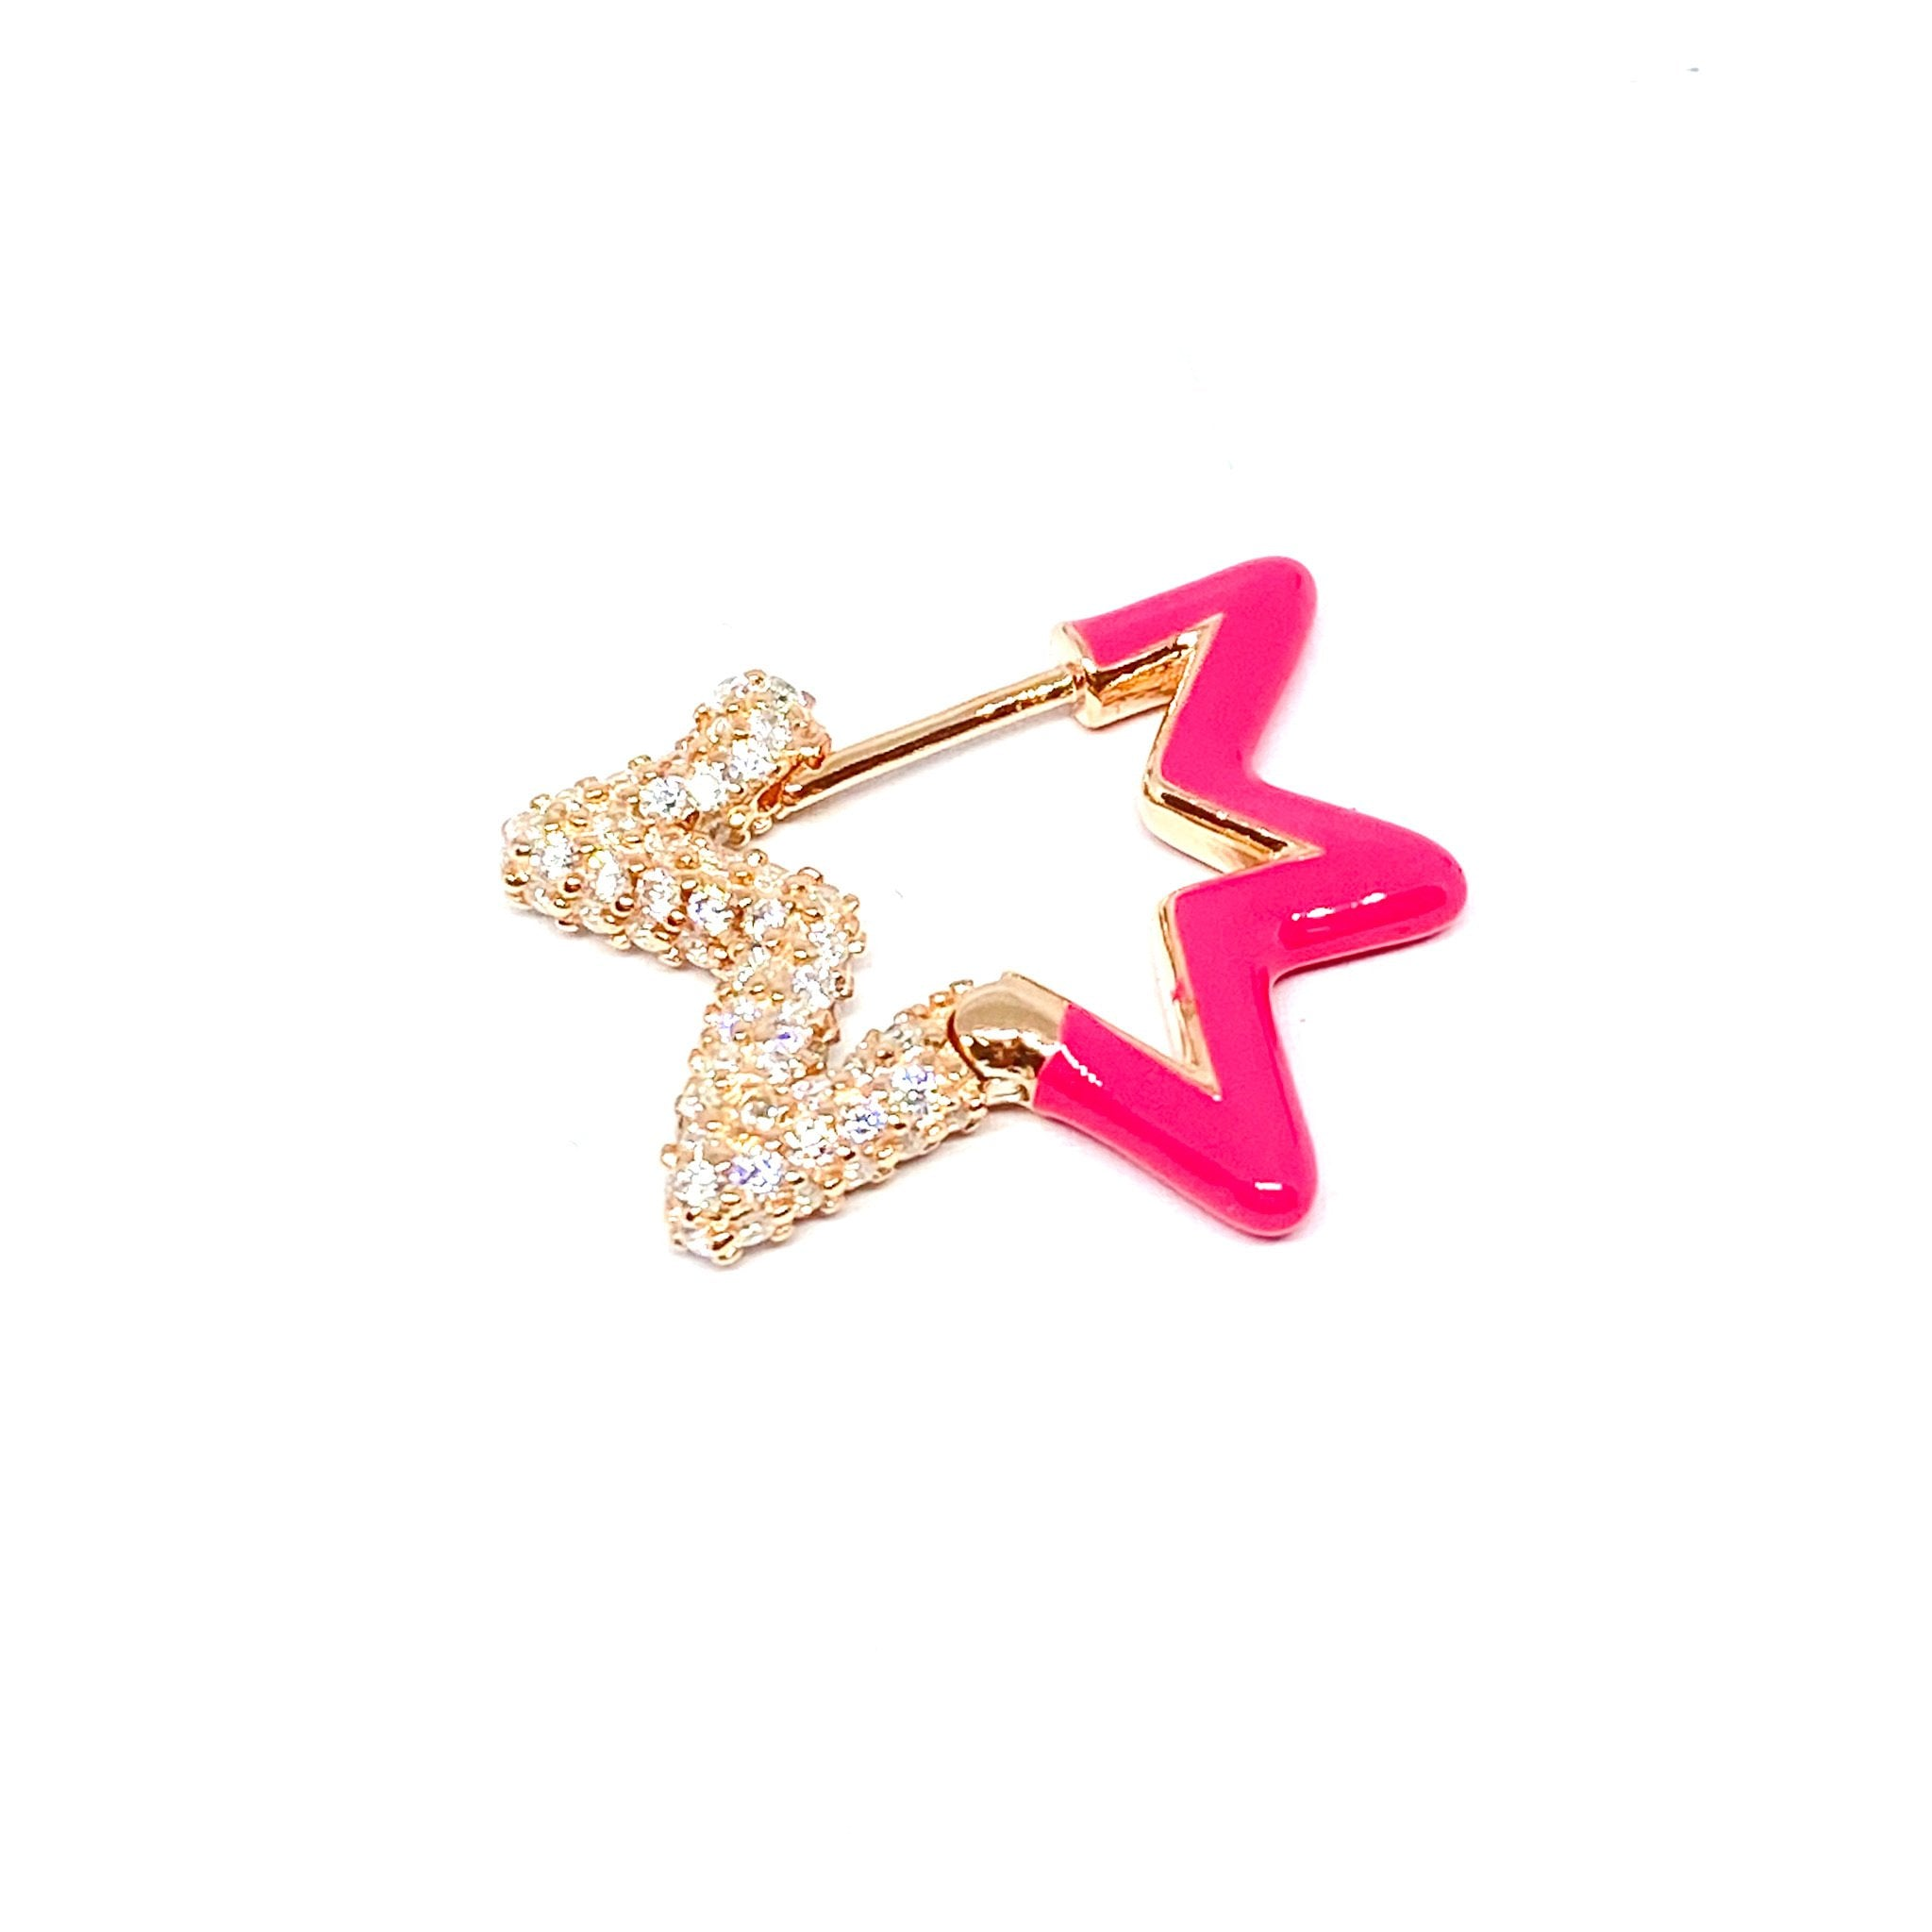 Neon Pink Two Sided Star Earring